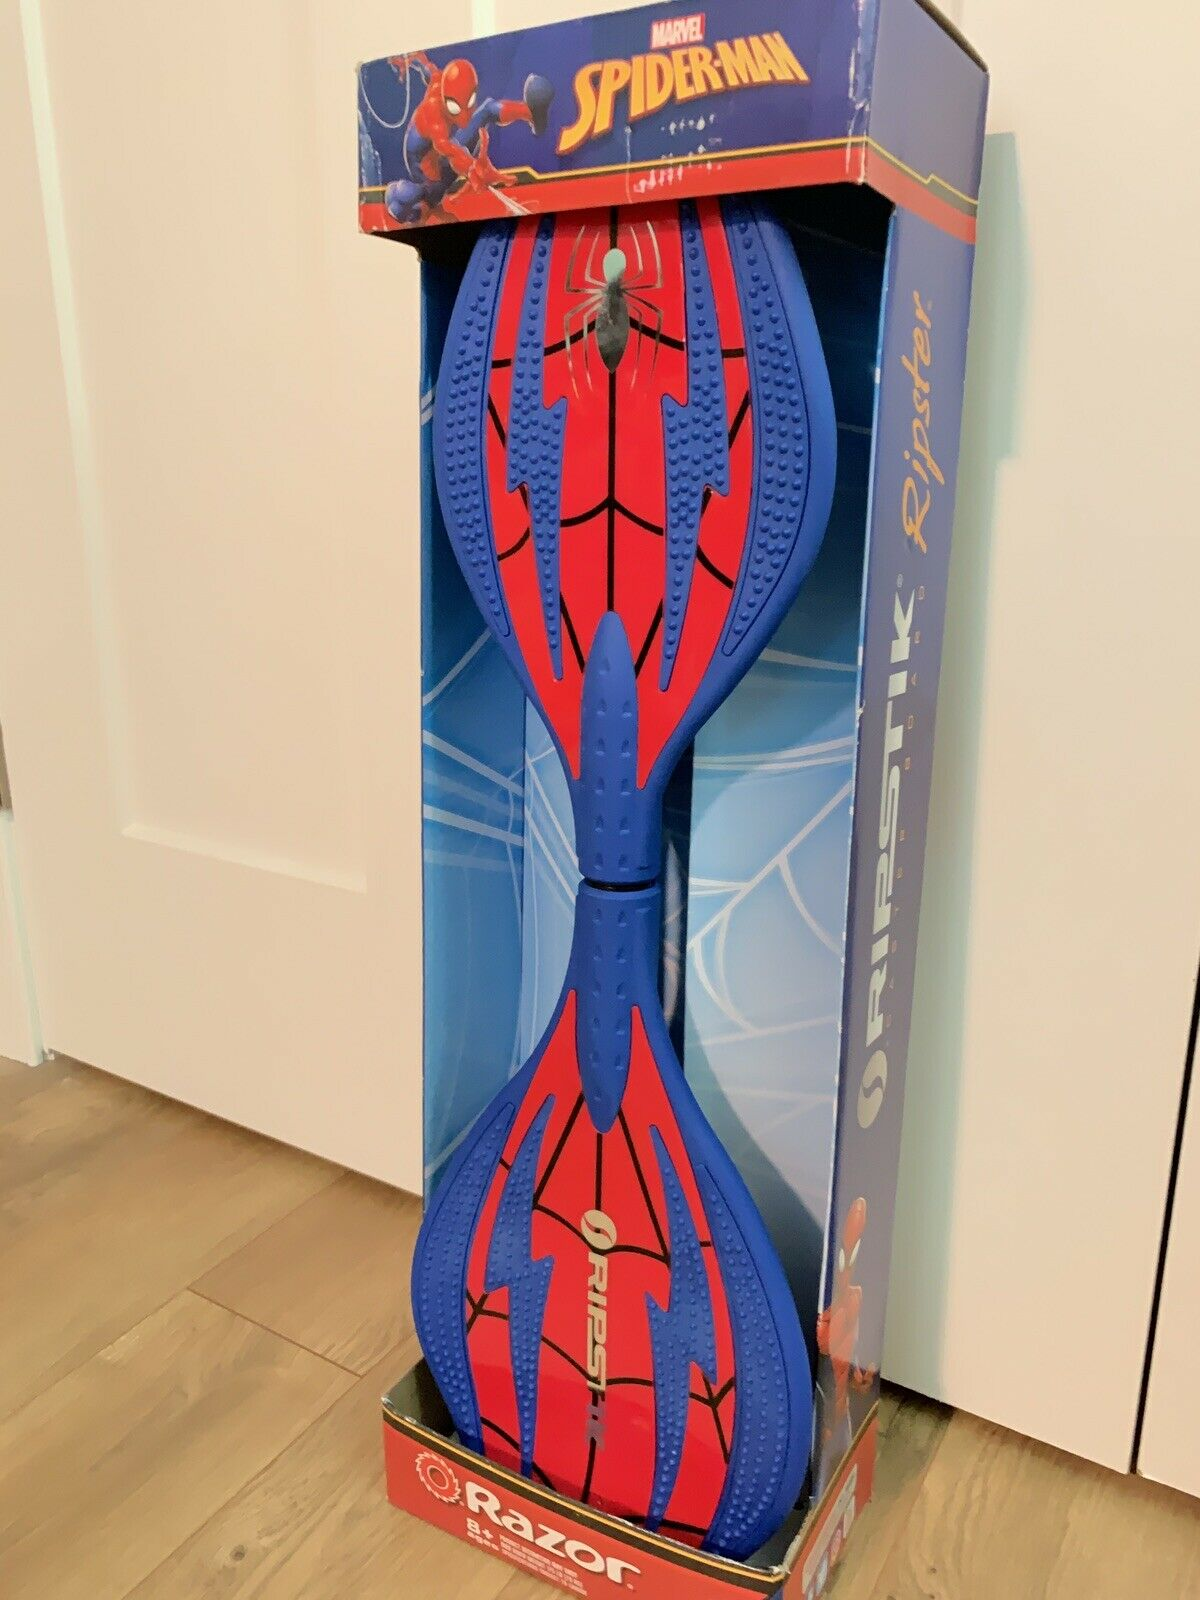 Spider-Man  Ripstik Ripster Caster Board   Stakeboard NEW UNOPENED  presenting all the latest high street fashion